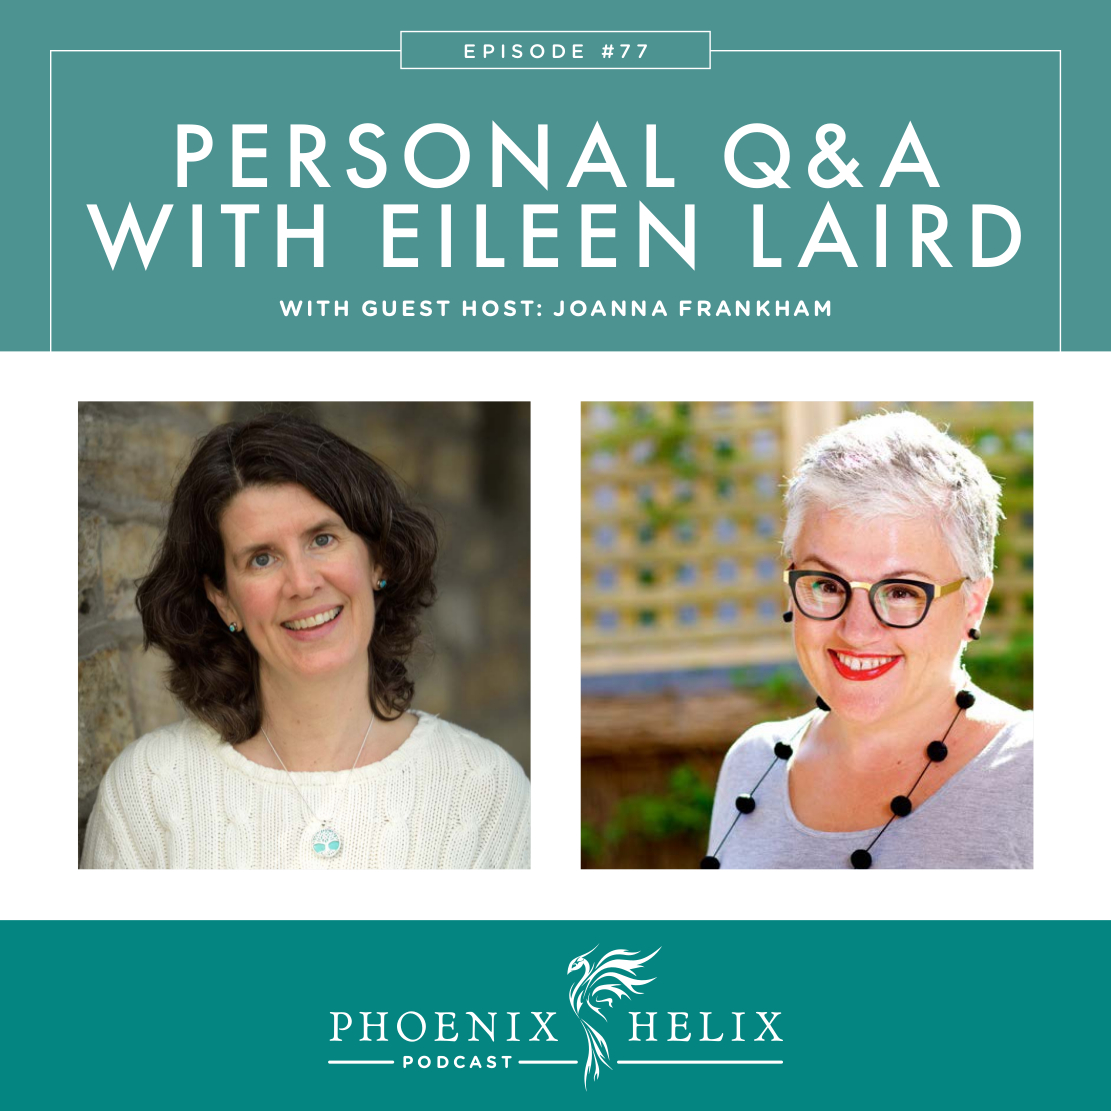 Personal Q&A with Eileen Laird | Phoenix Helix Podcast